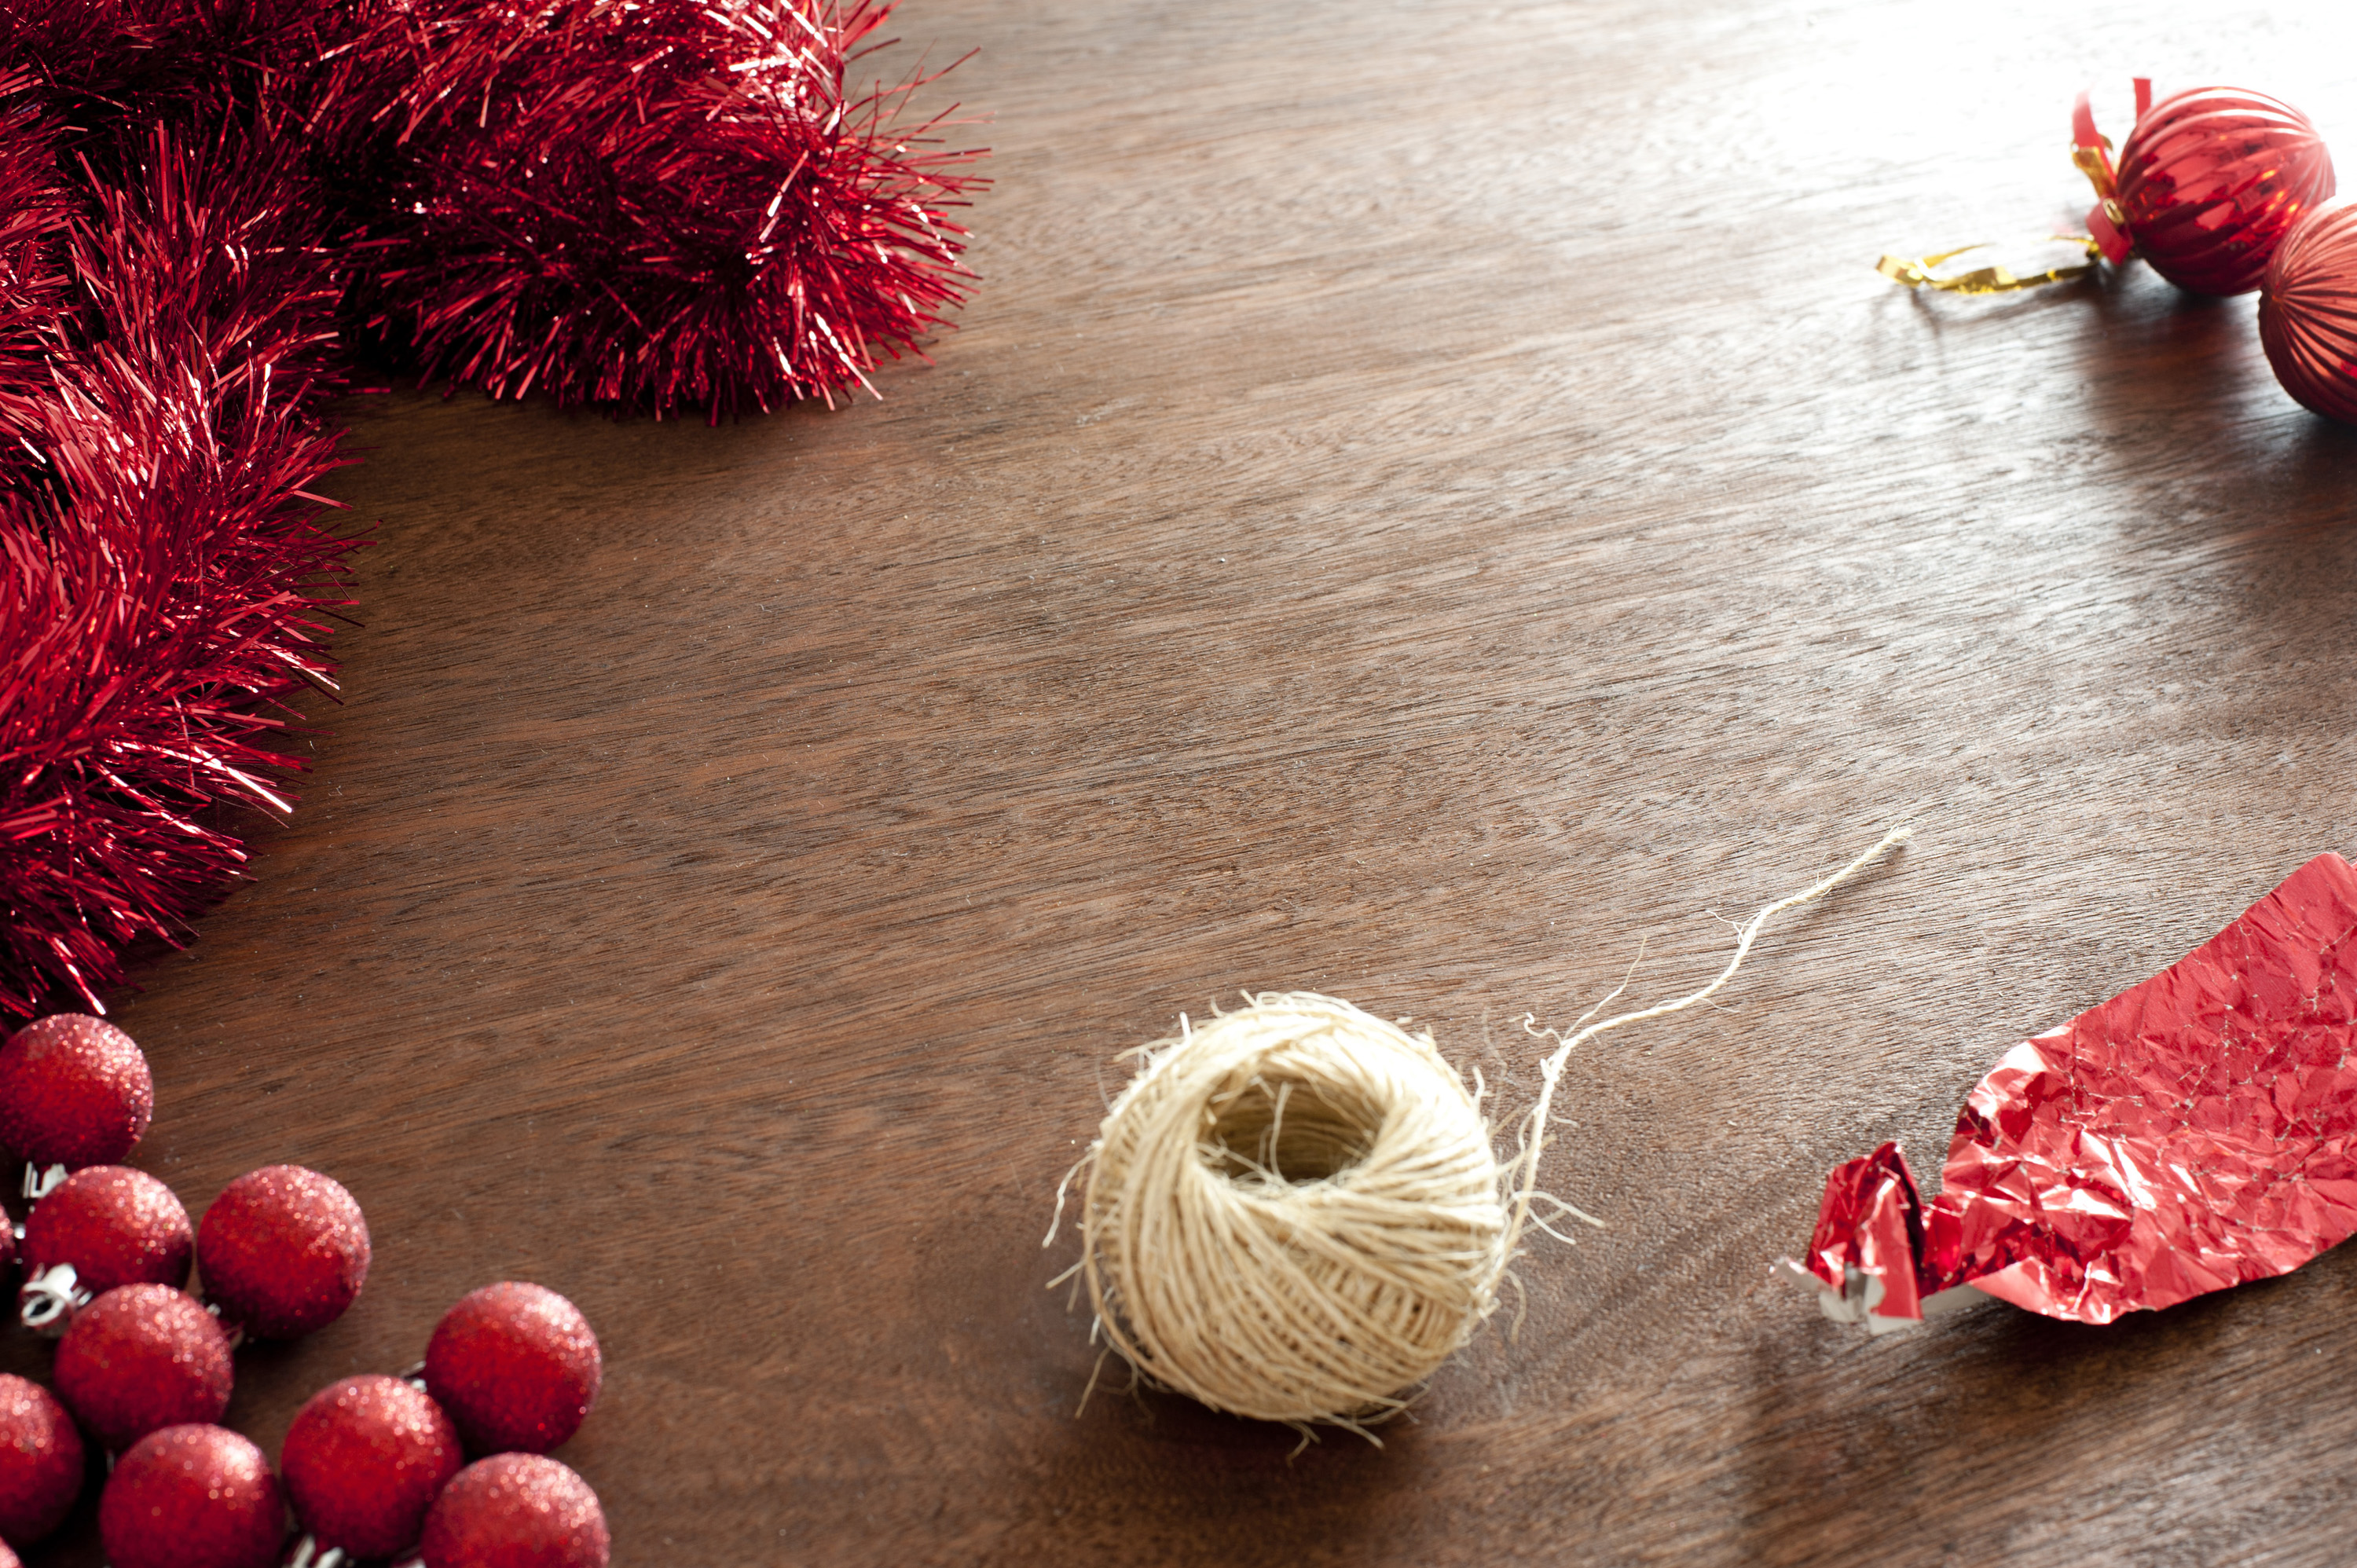 Different Christmas decorative elements on wooden table. Rope, red glare, wrap and Christmas balls